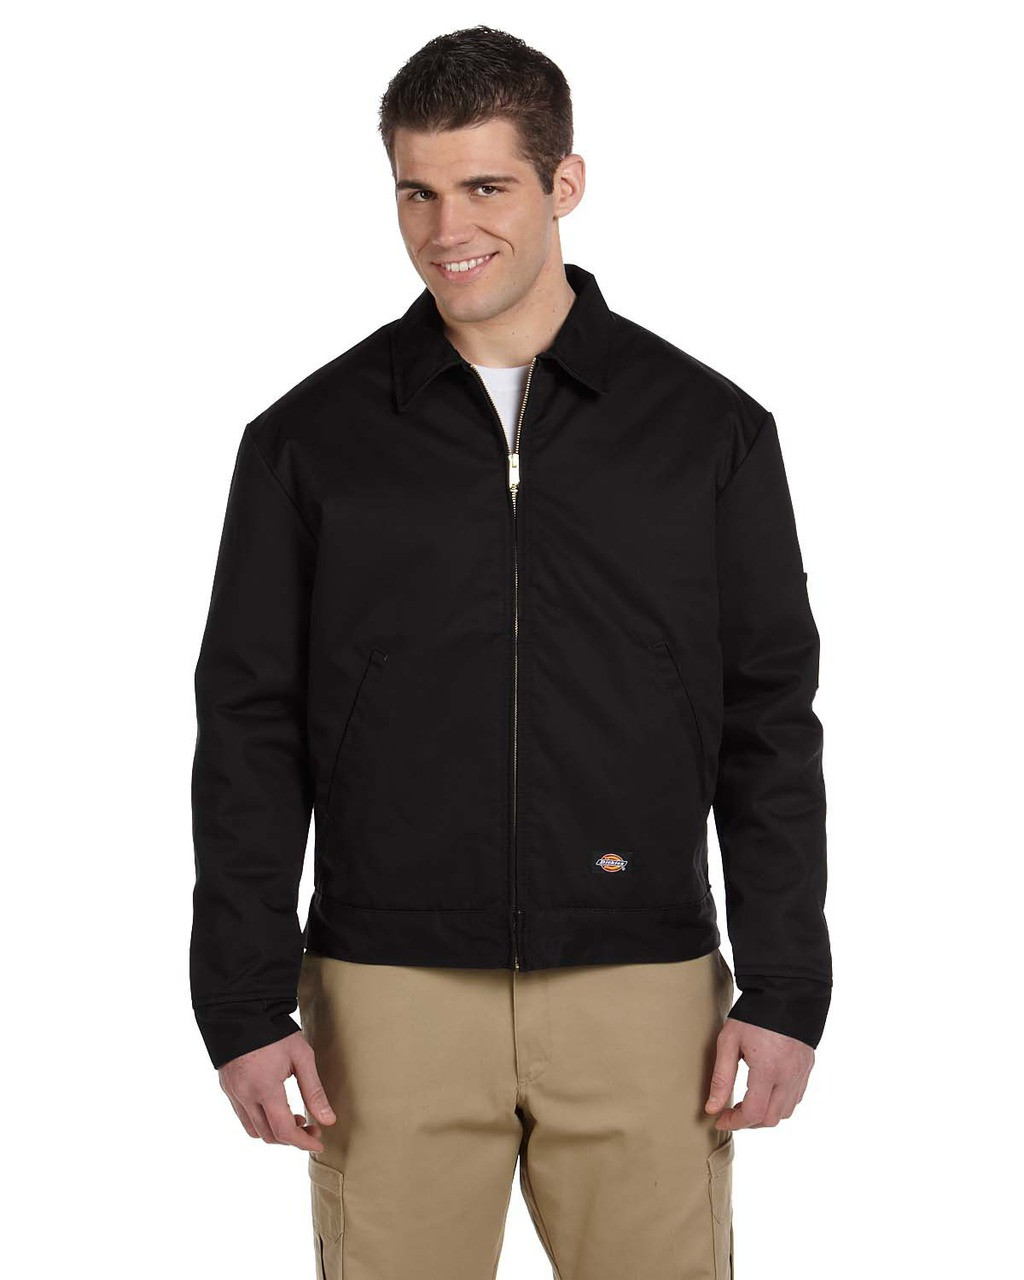 Black - JT15 Dickies Lined Eisenhower Jacket | Blankclothing.ca